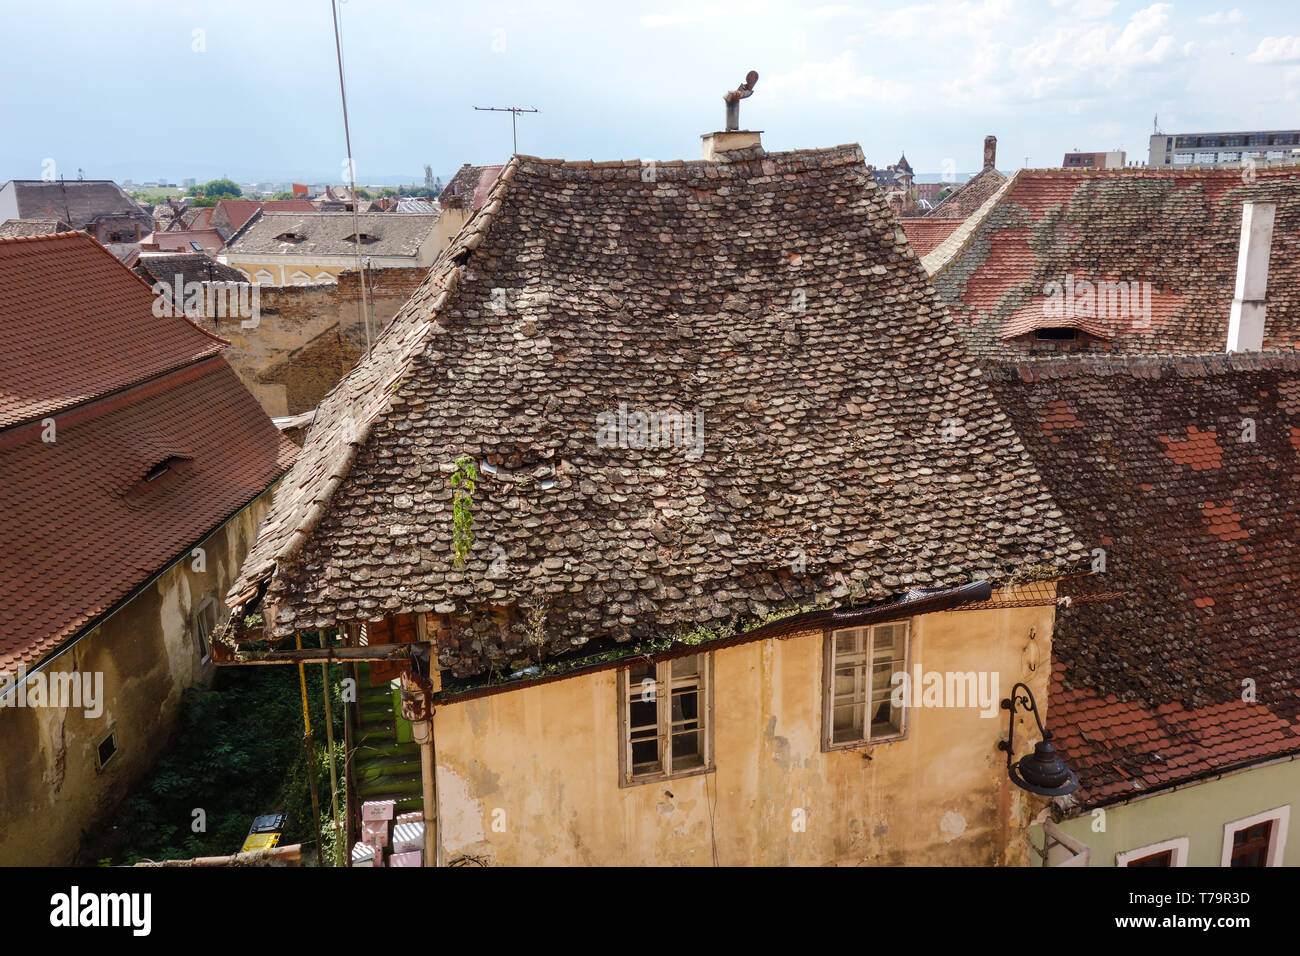 Weathered rooftop of an old house with an unique chimney in Sibiu (Hermannstadt), Romania - Stock Image